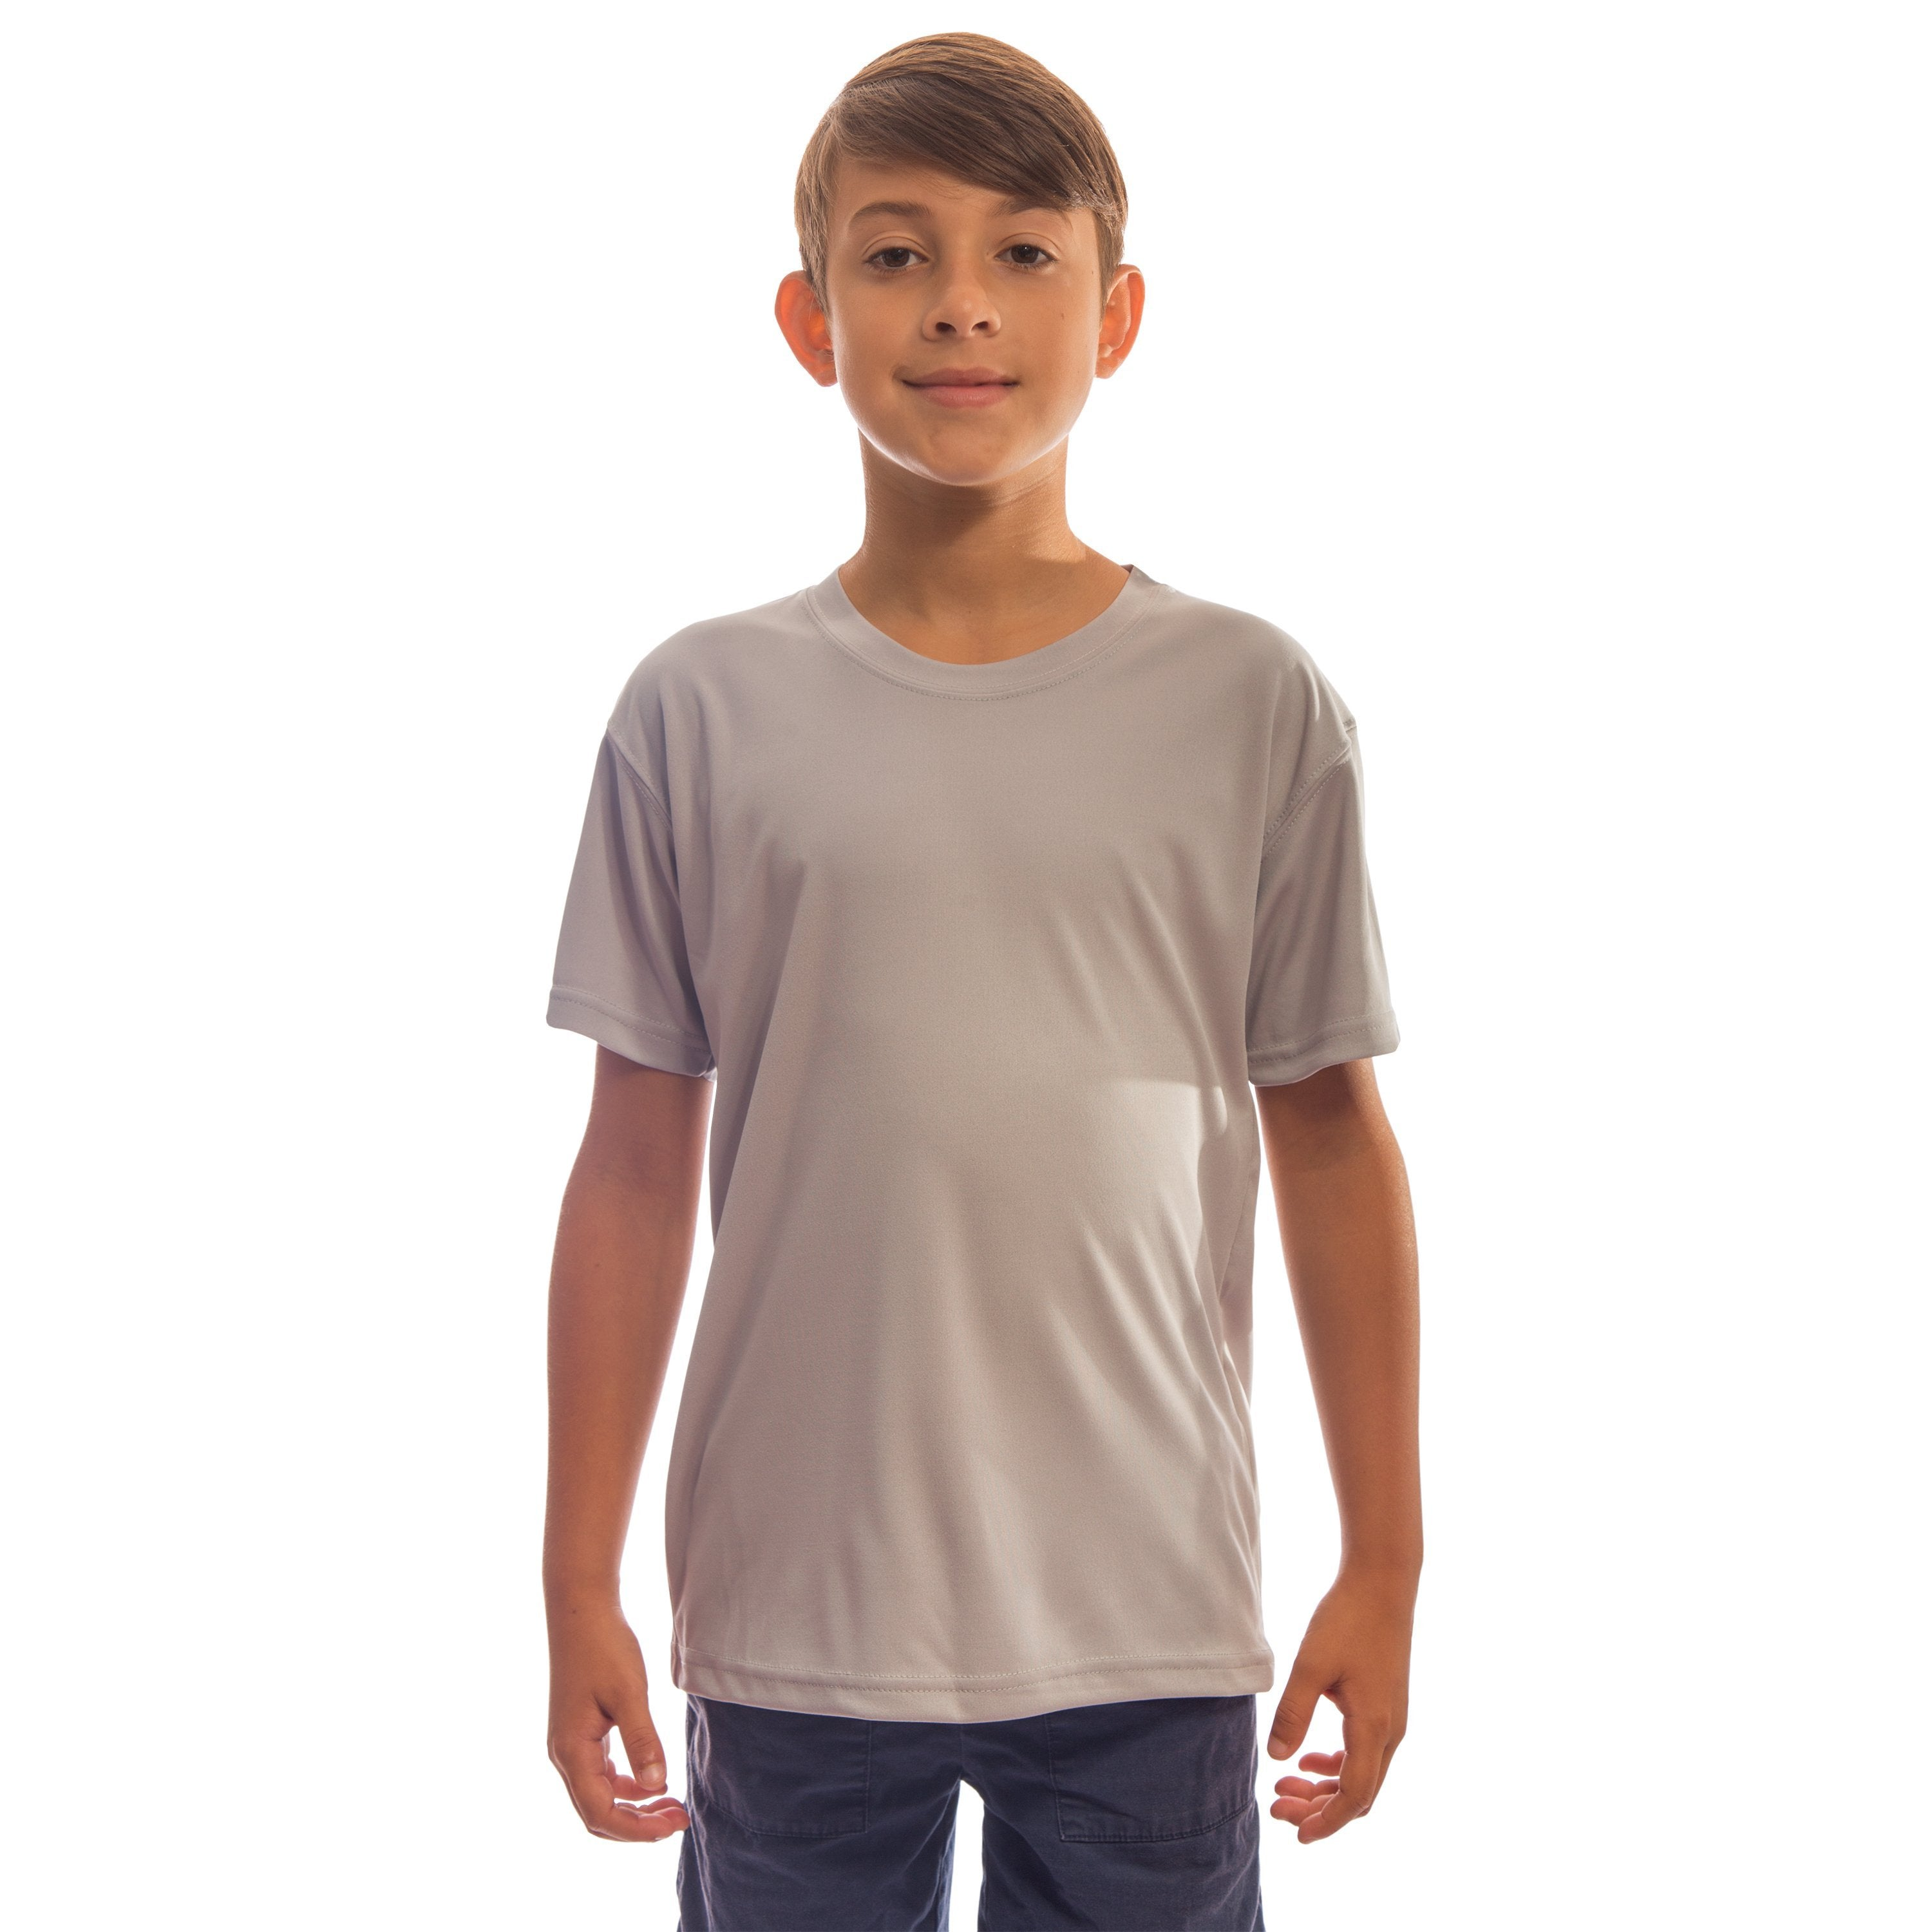 M180AG Youth Solar Short Sleeve - Athletic Grey